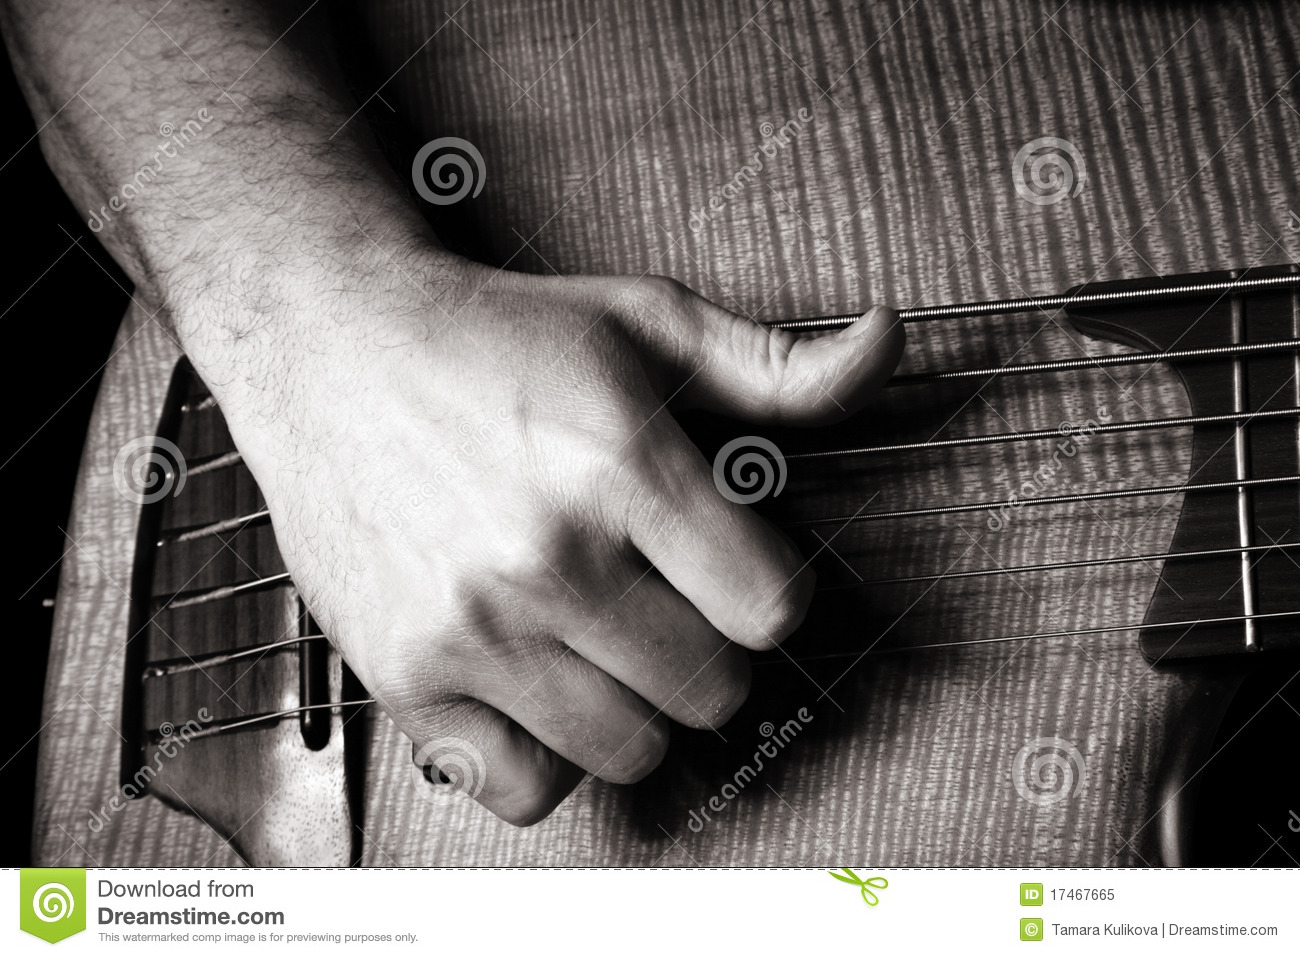 playing six string electric bass guitar stock image image of skill hand 17467665. Black Bedroom Furniture Sets. Home Design Ideas